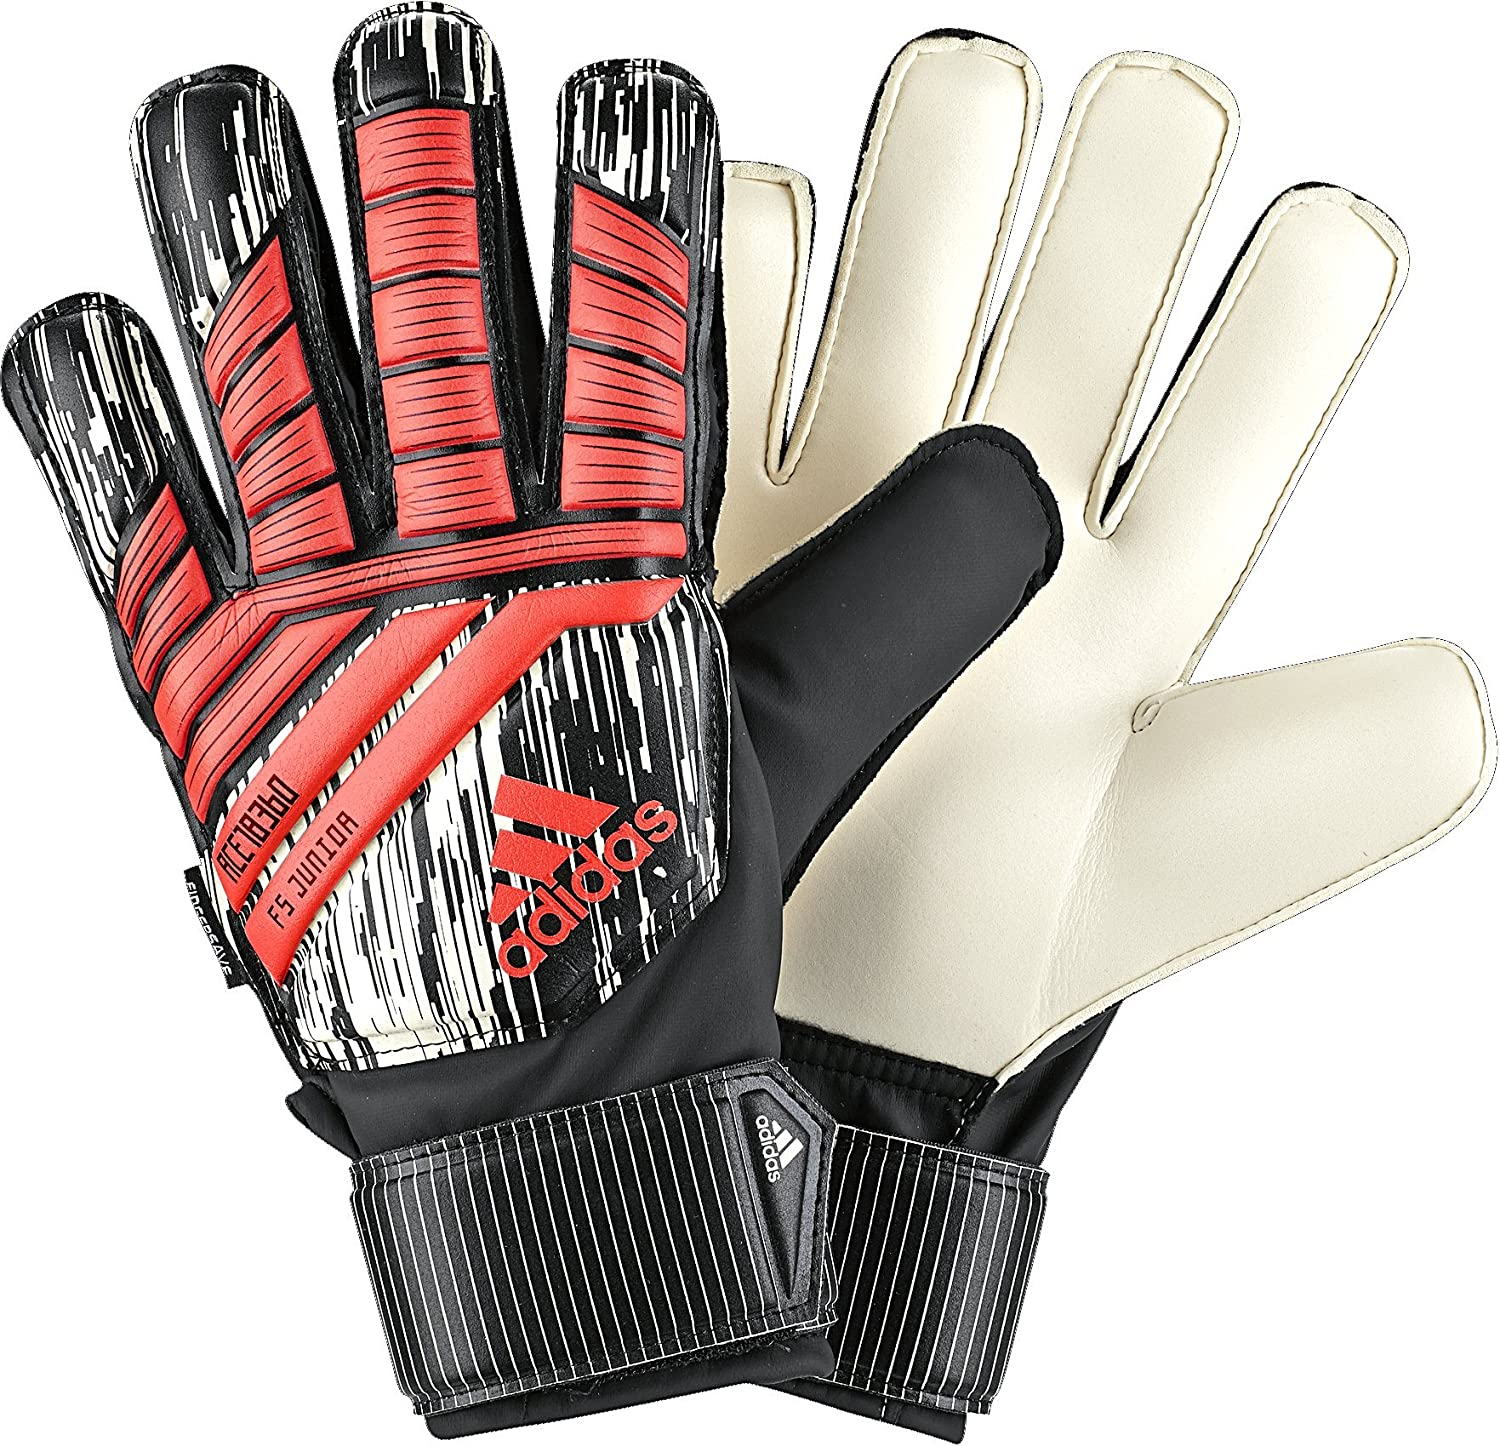 Adidas Performance Ace Fingersave Junior Manuel Torwart Handschuhe, hell rot, Größe 4